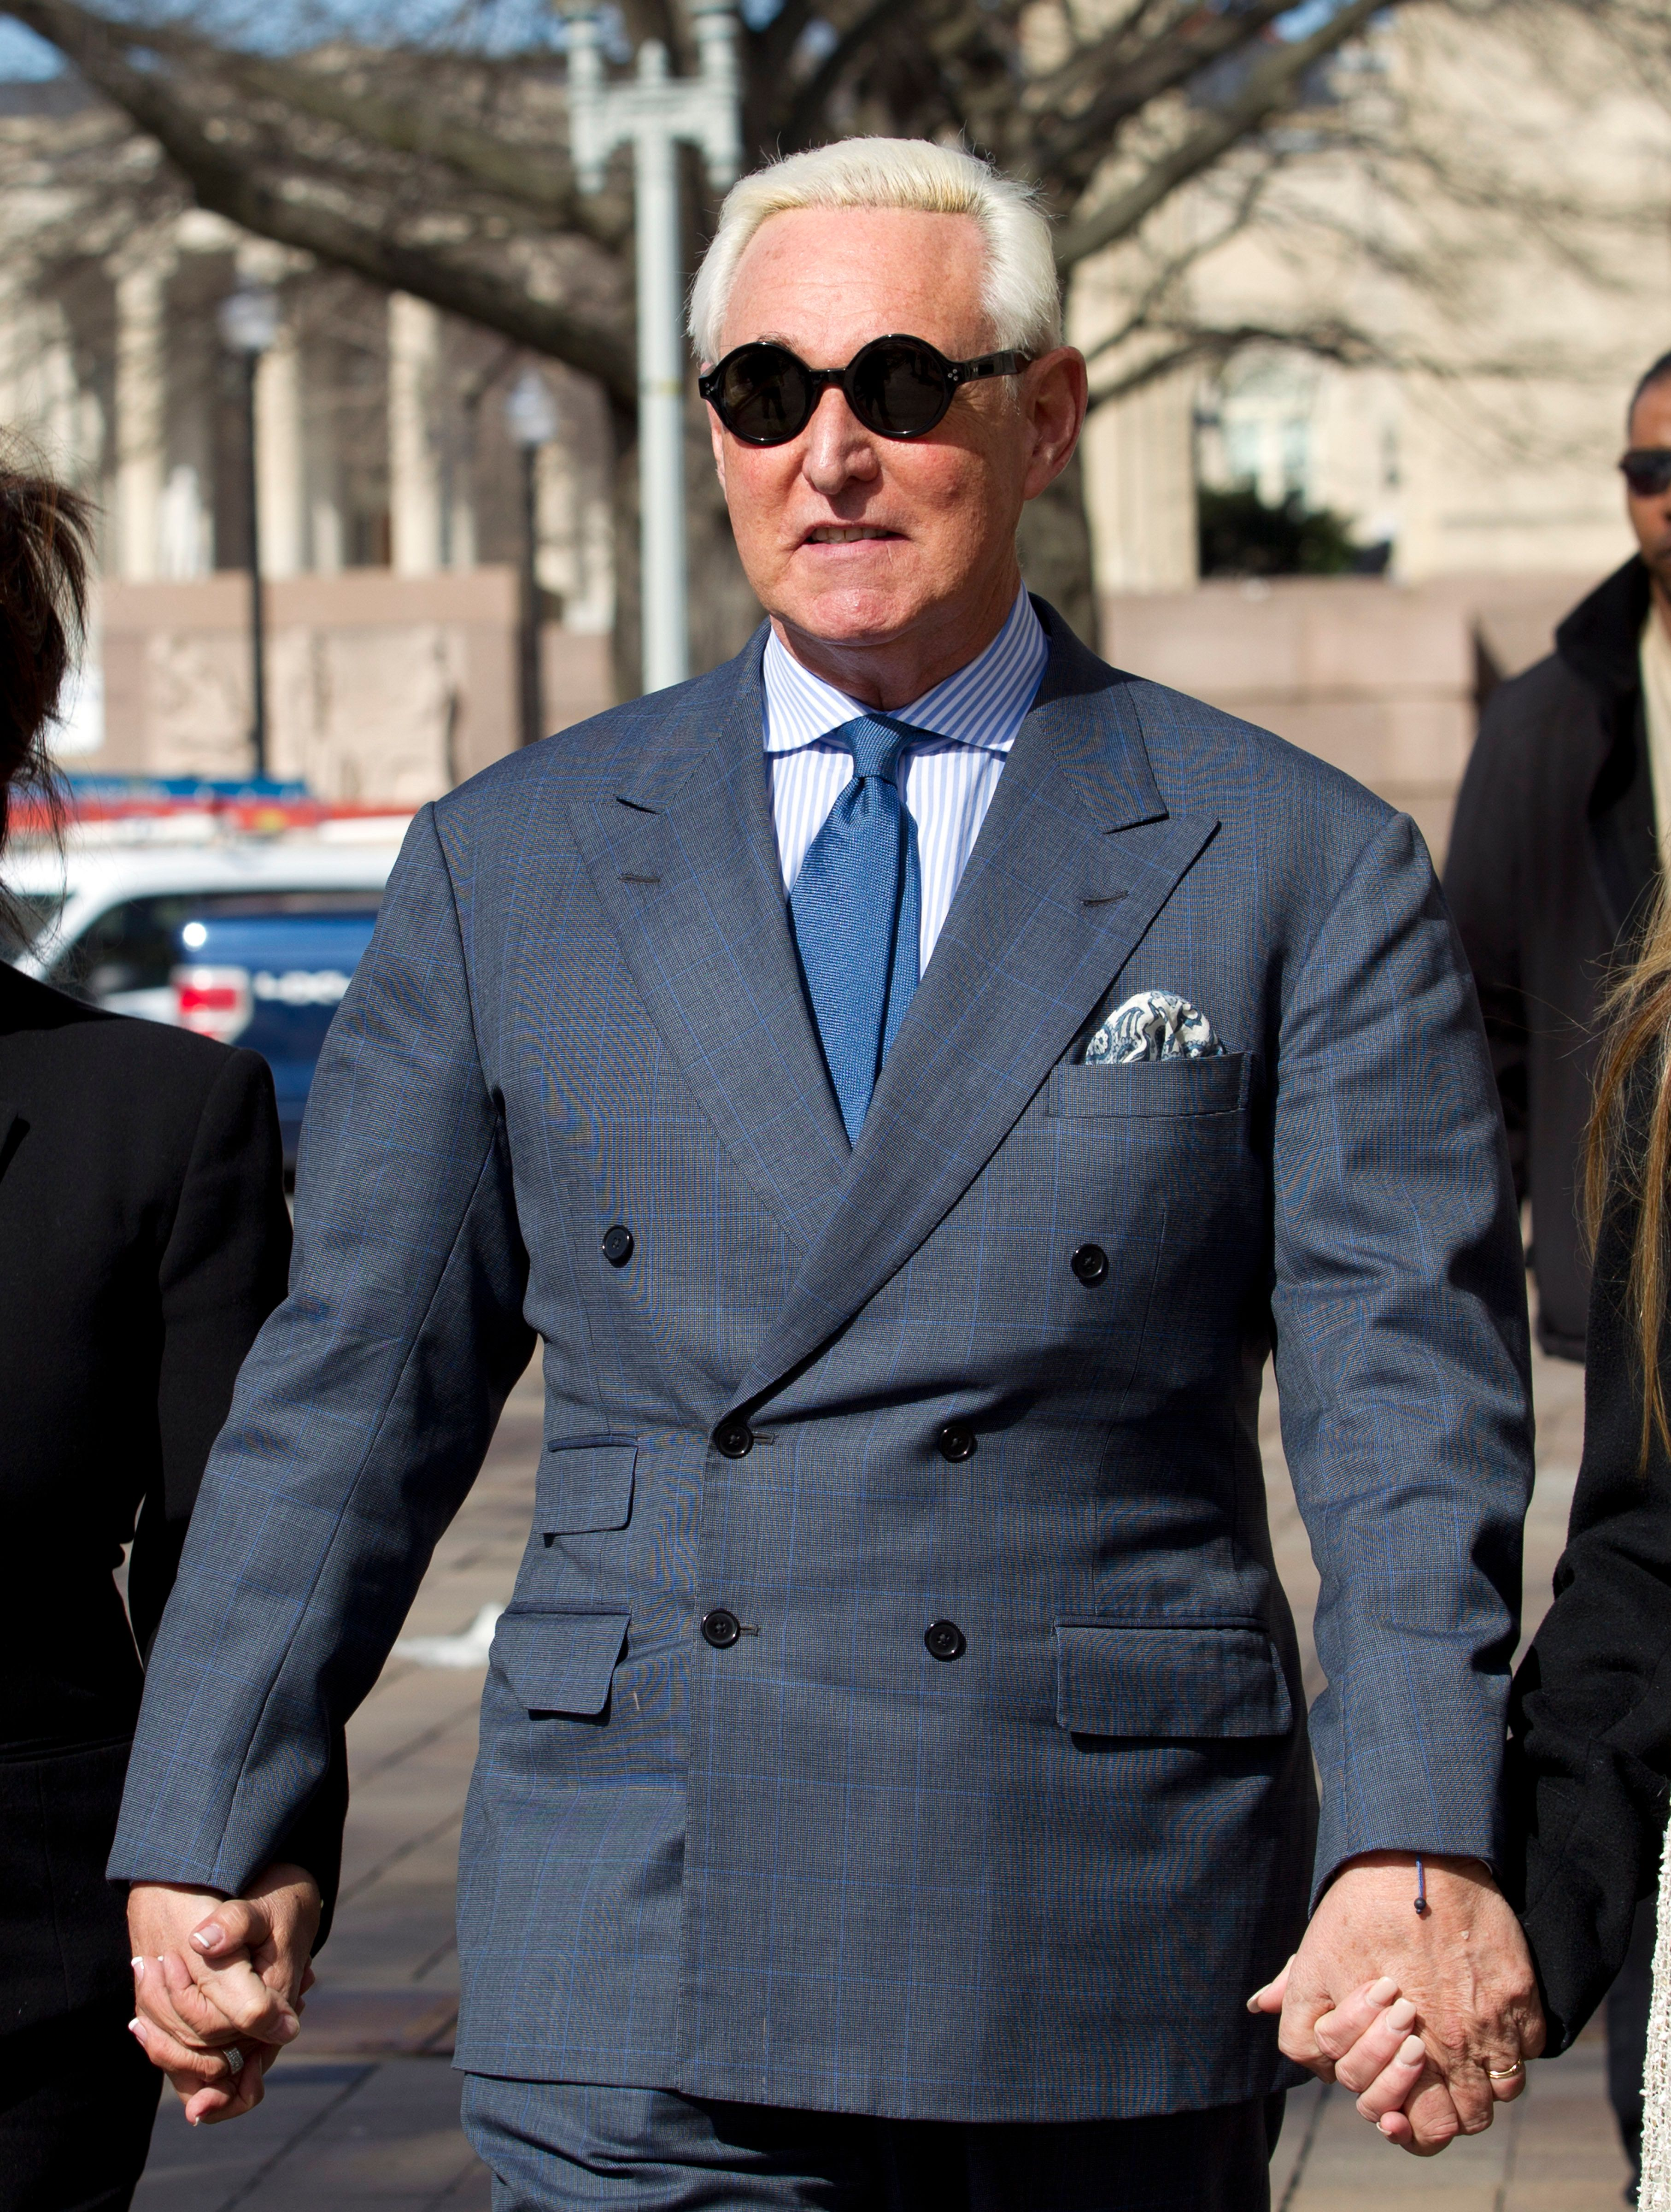 Former campaign adviser for President Donald Trump, Roger Stone arrives at federal court in Washington, Thursday, Feb. 21, 2019. Stone was ordered to appear in court over a Instagram post he made about U.S. Judge Amy Berman Jackson. (AP Photo/Jose Luis Magana)